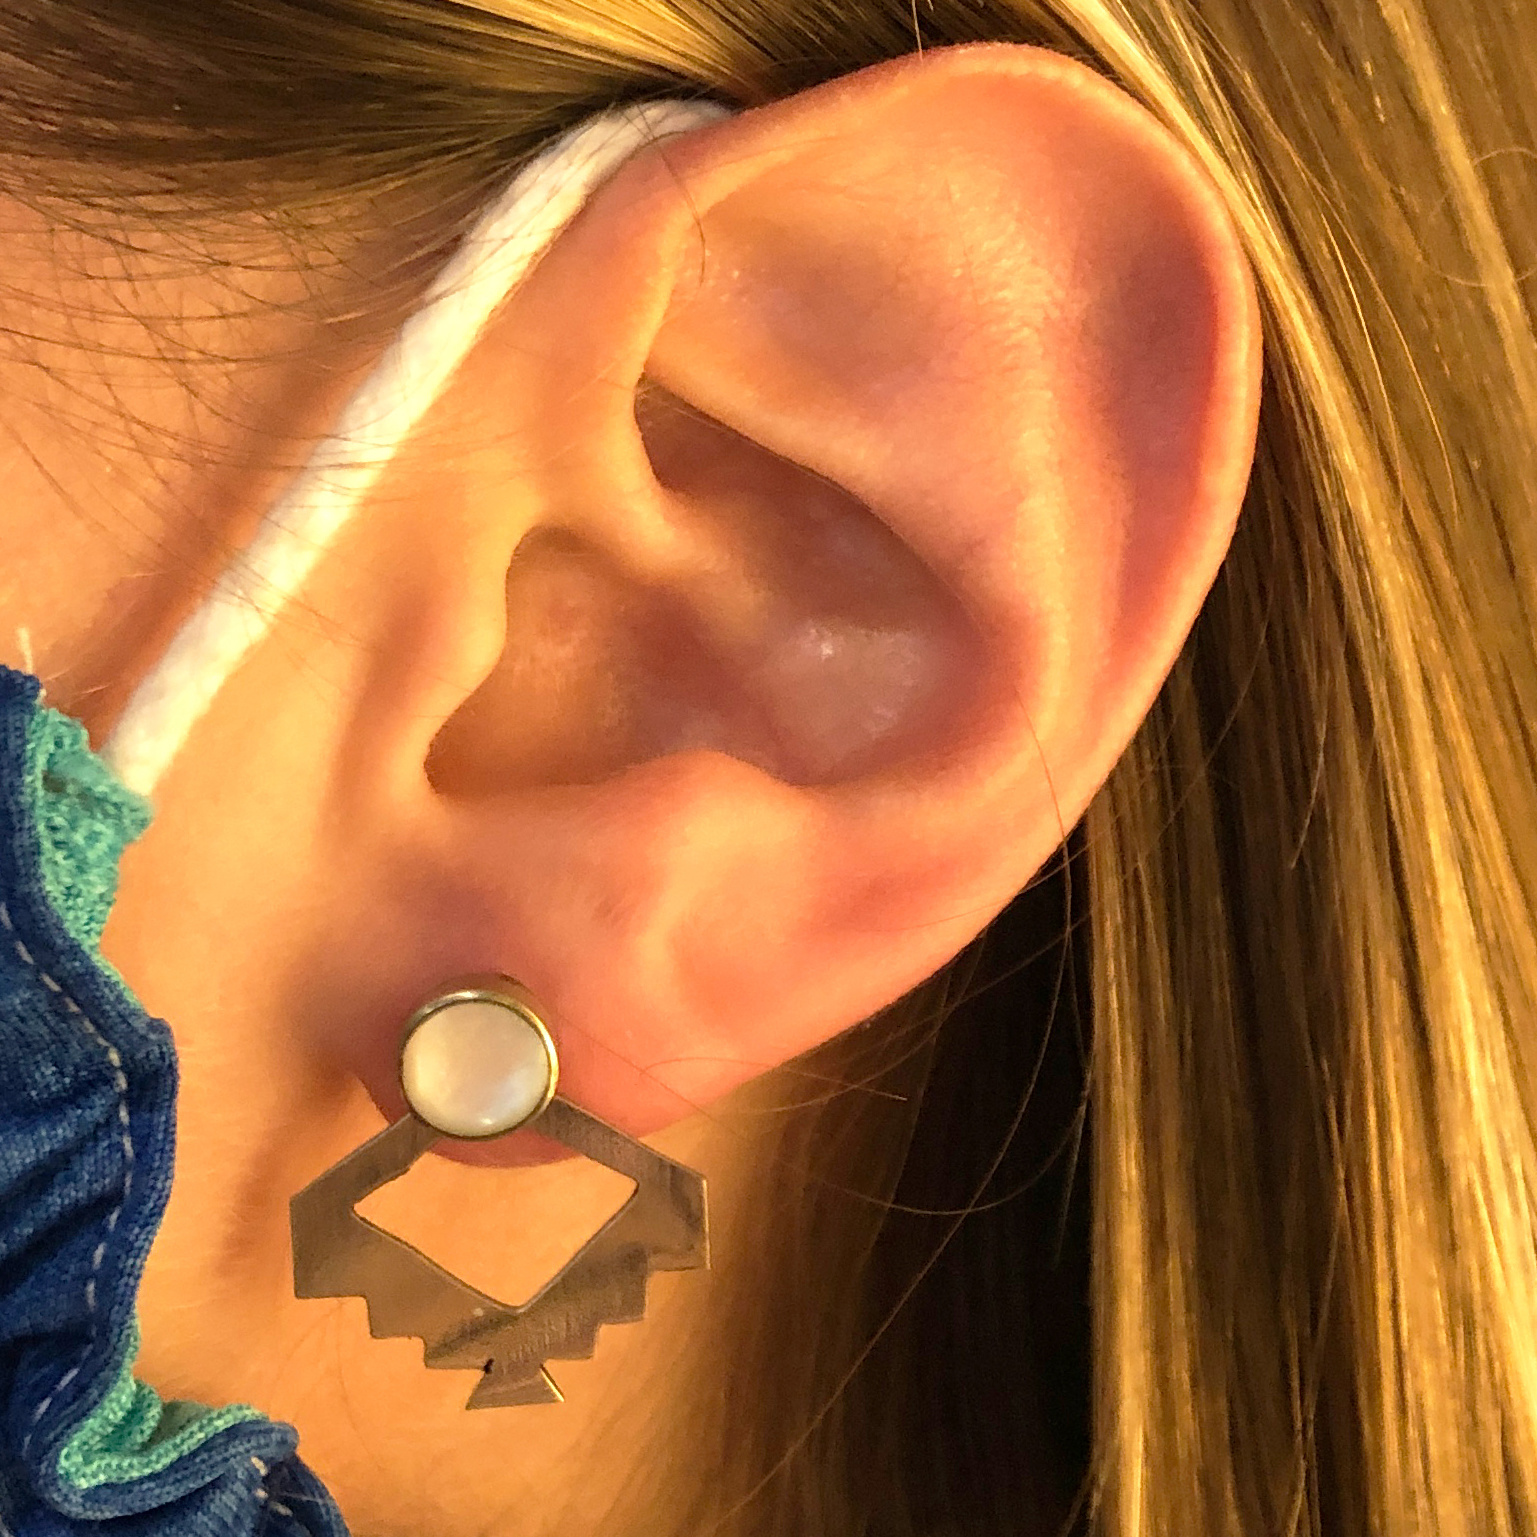 Incan Ear Jacket Stud Earrings